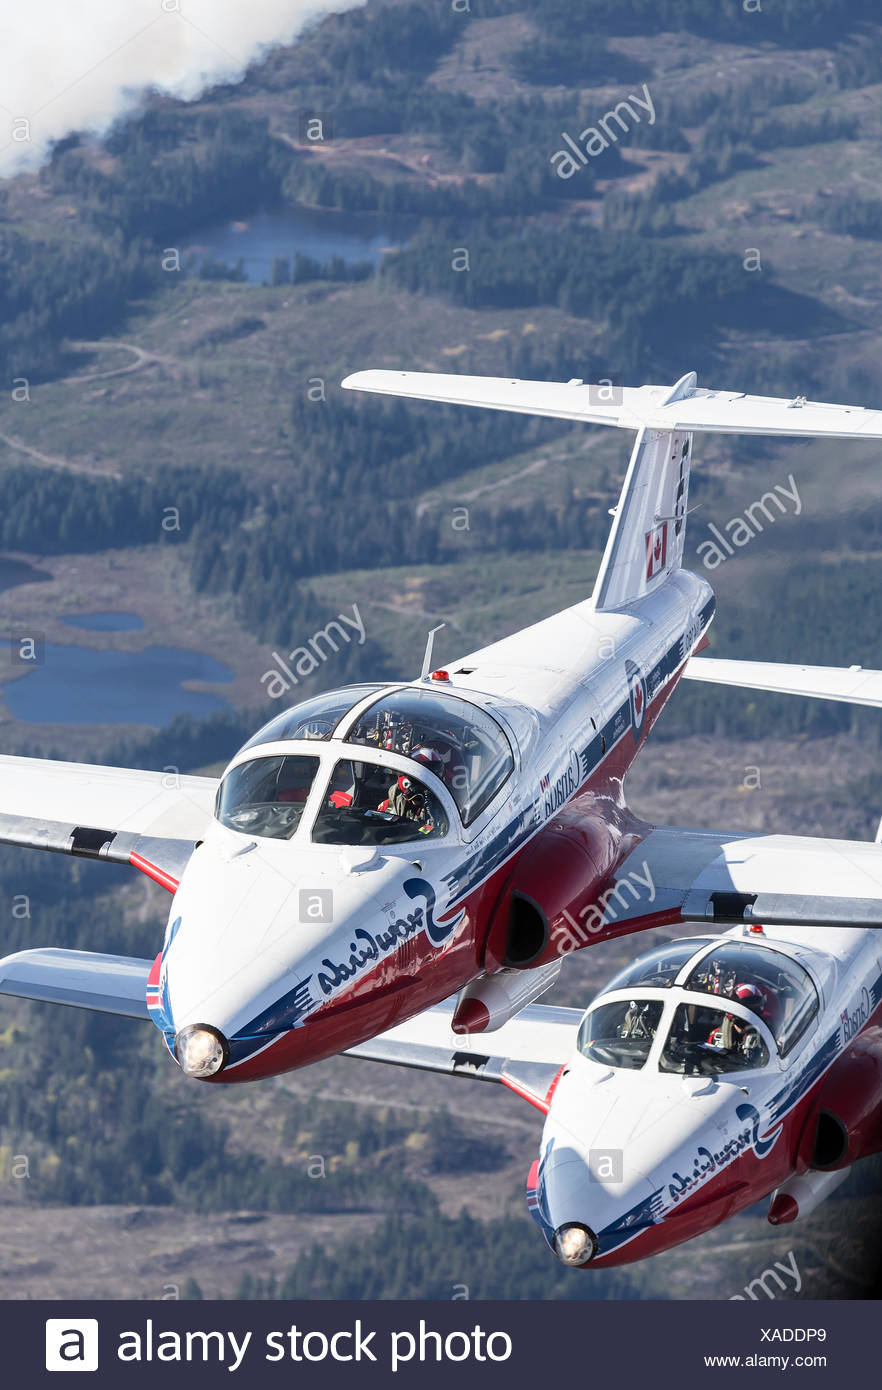 Canada's Tudor flying demonstration team, the Snowbirds, flies over mountains in strathcona Park. Stock Photo